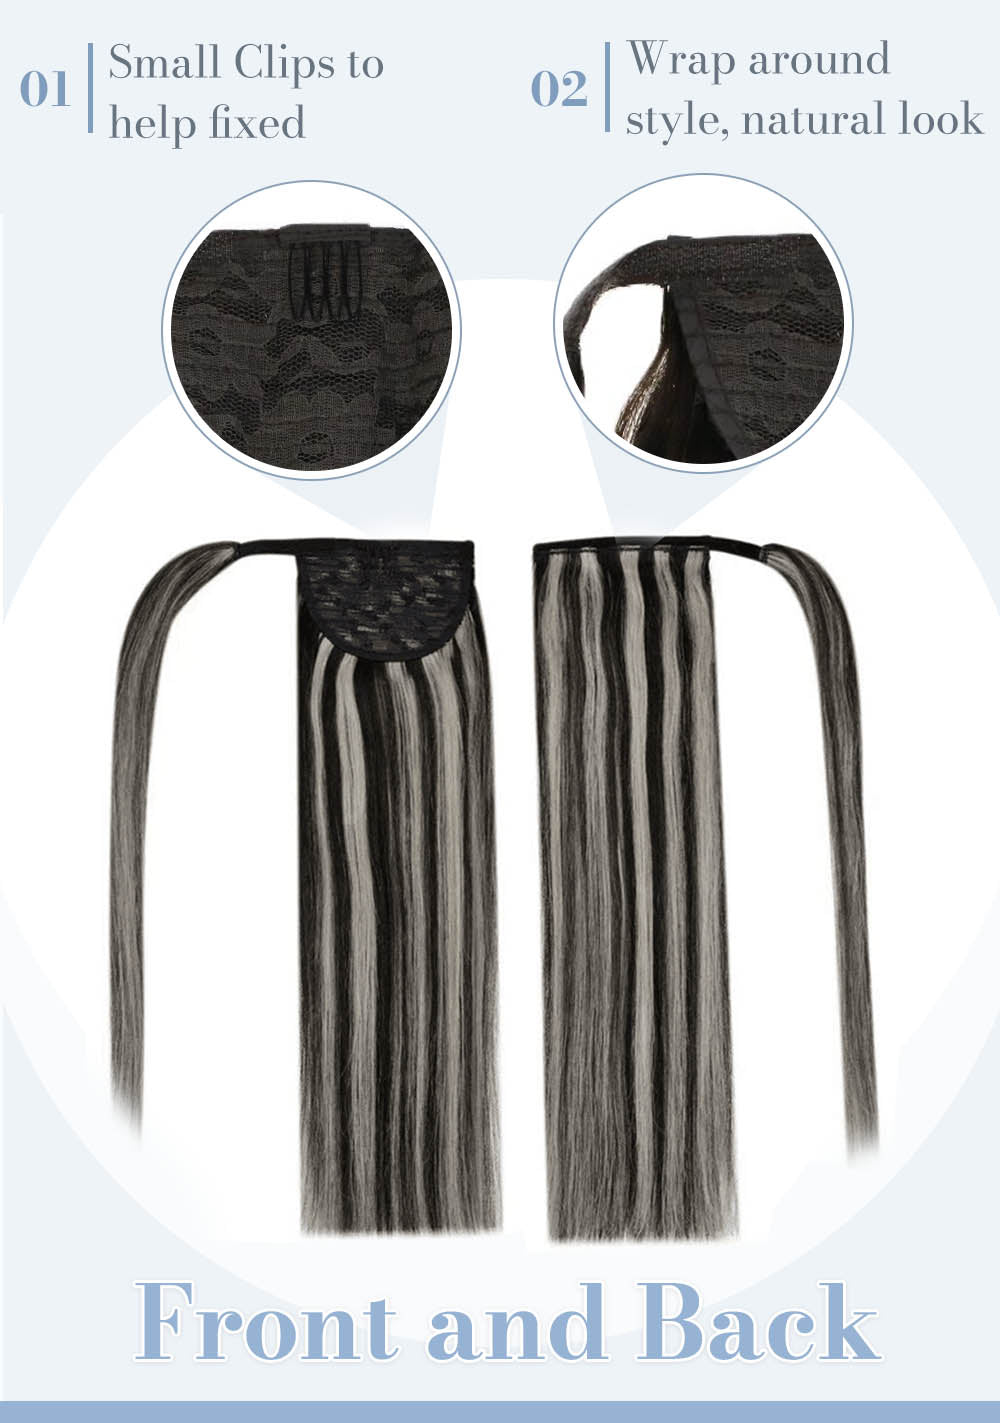 Small clips to help fixed wrap around style natural look front and back look